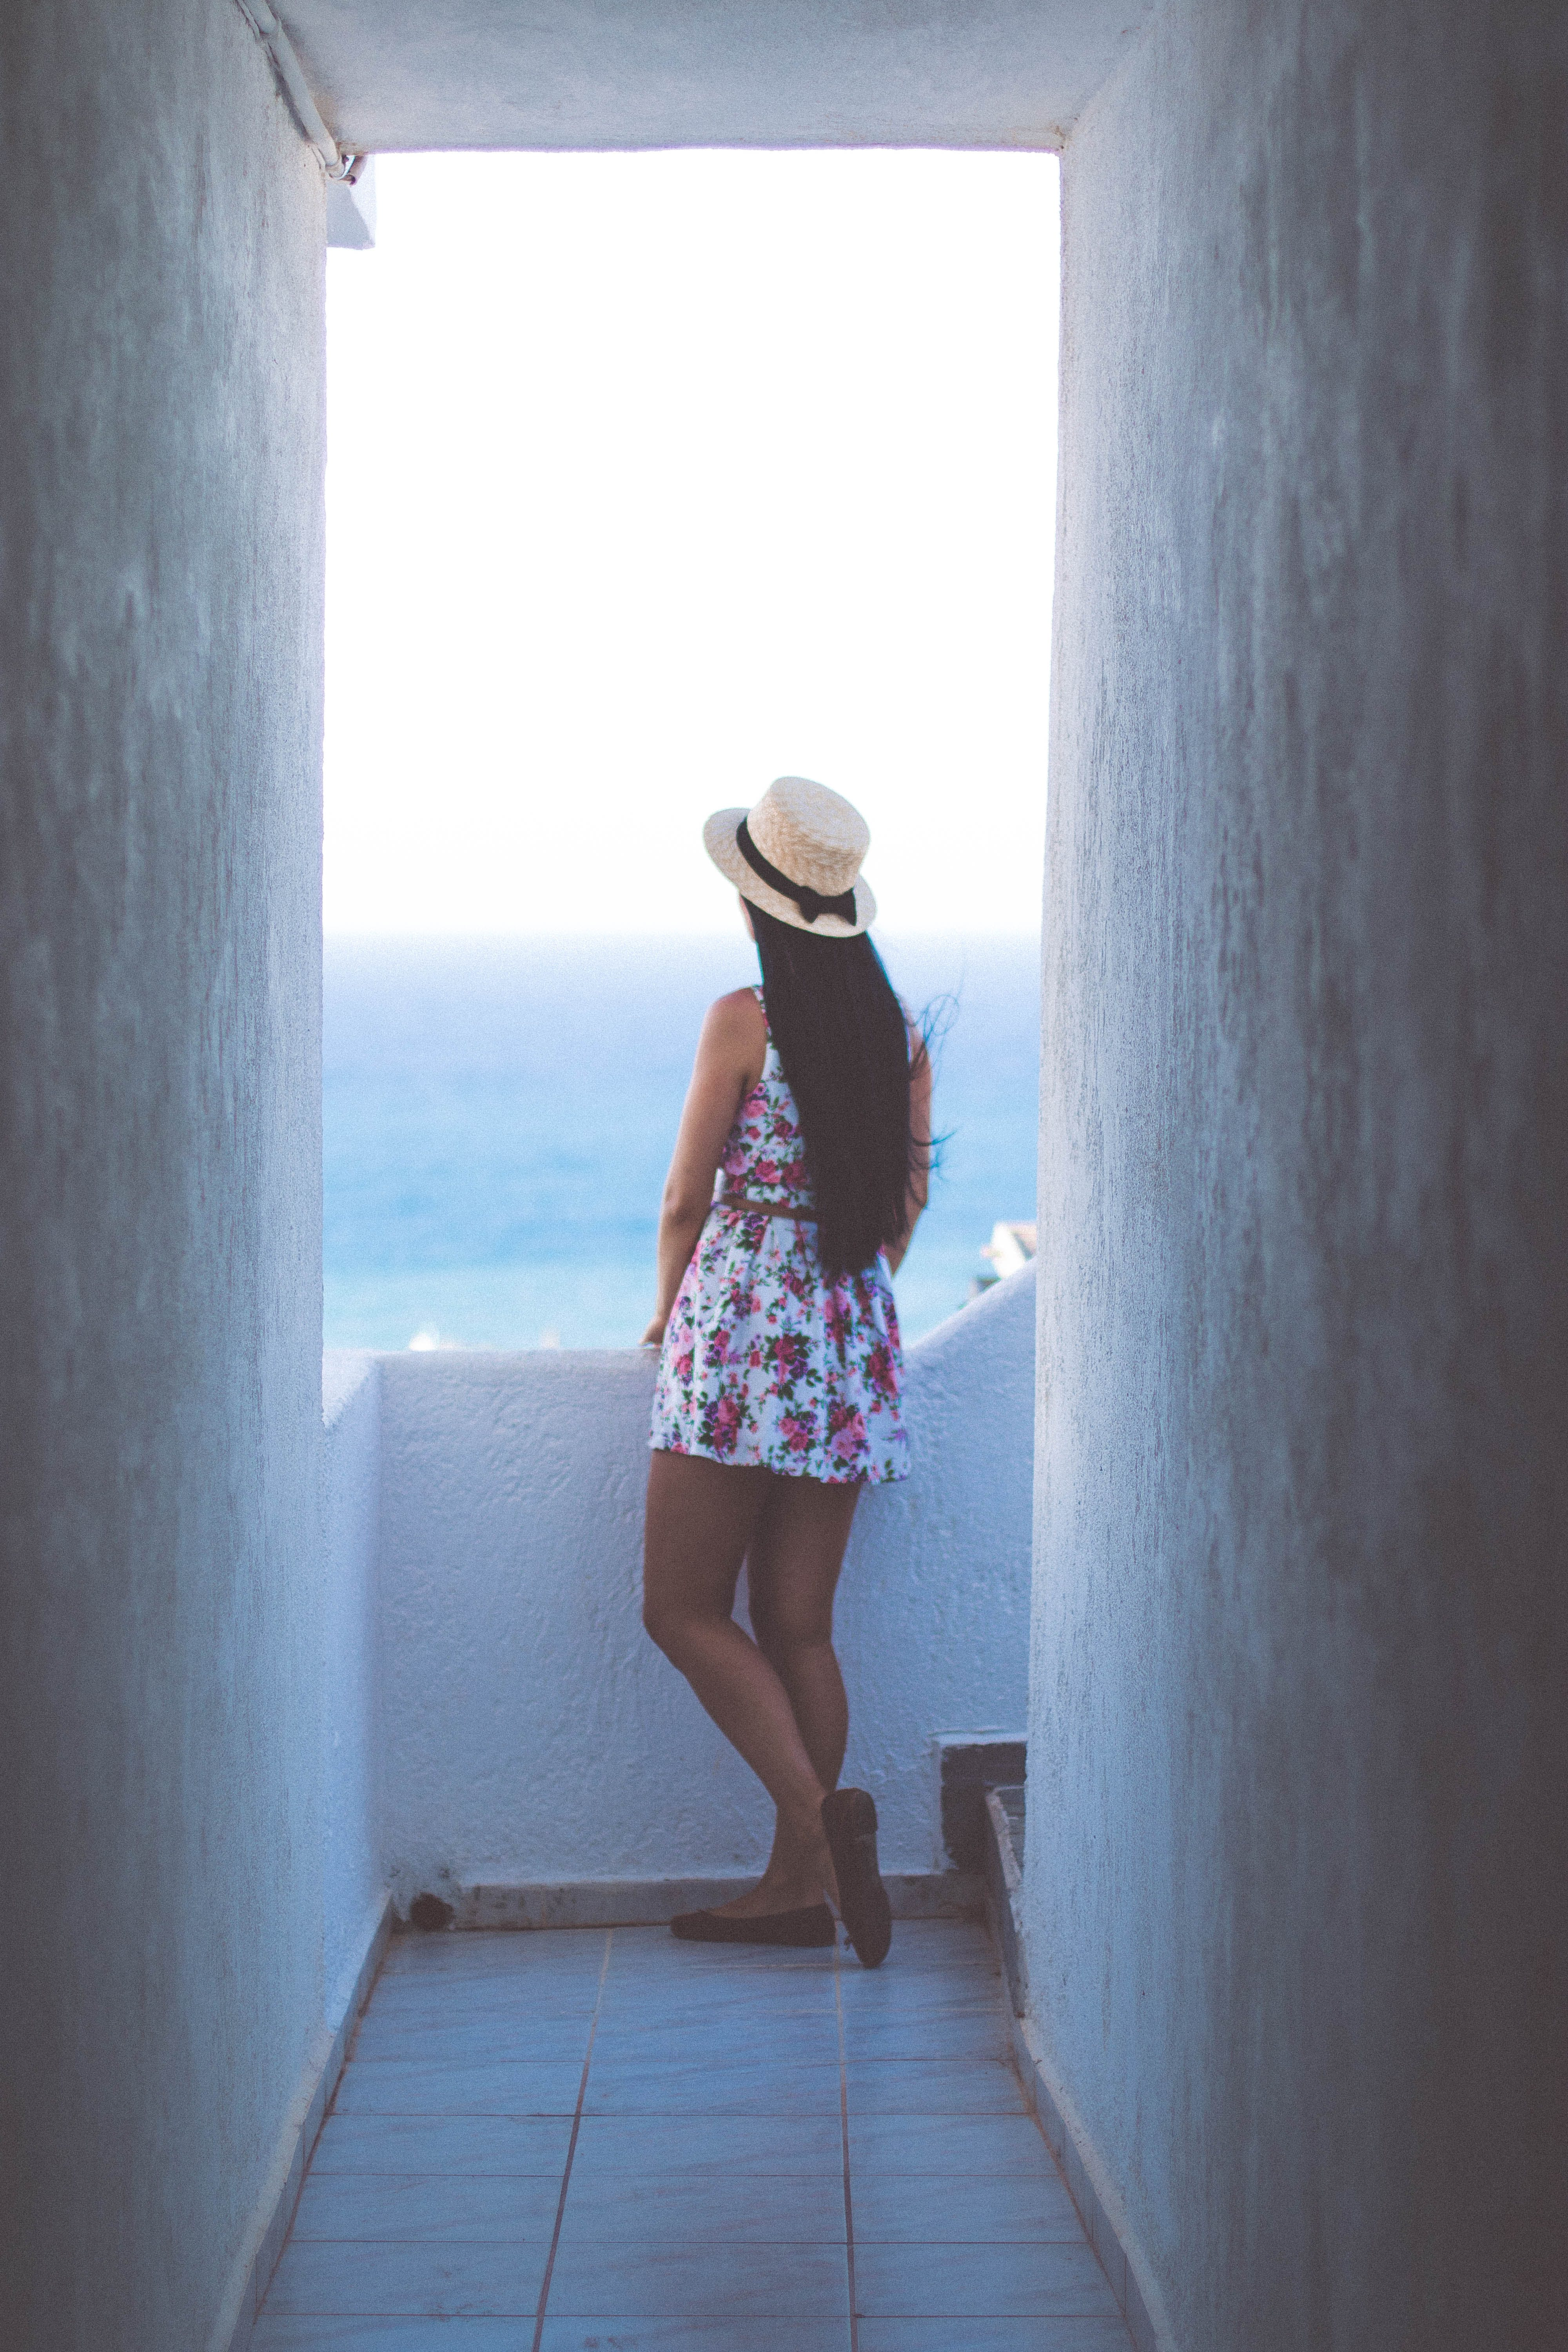 Woman in Pink Floral Midi Dress Standing on Balcony